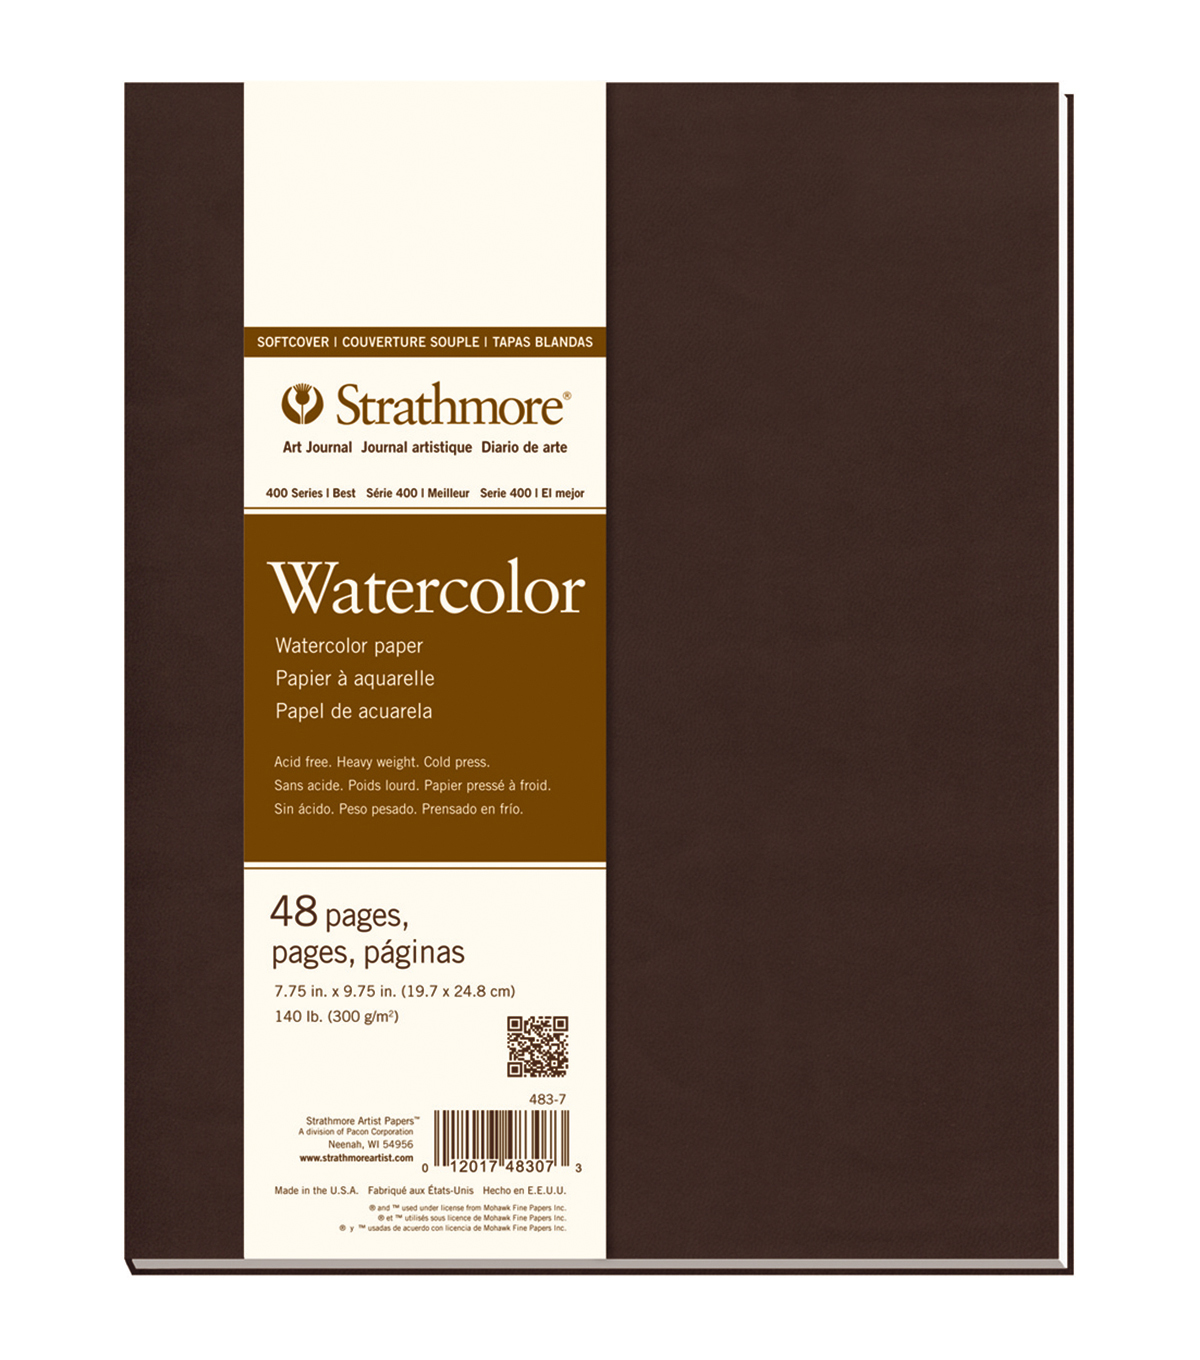 Strathmore Soft Cover Watercolor Journal Book With 48 Pages 7.75\u0027\u0027x9.75\u0027\u0027